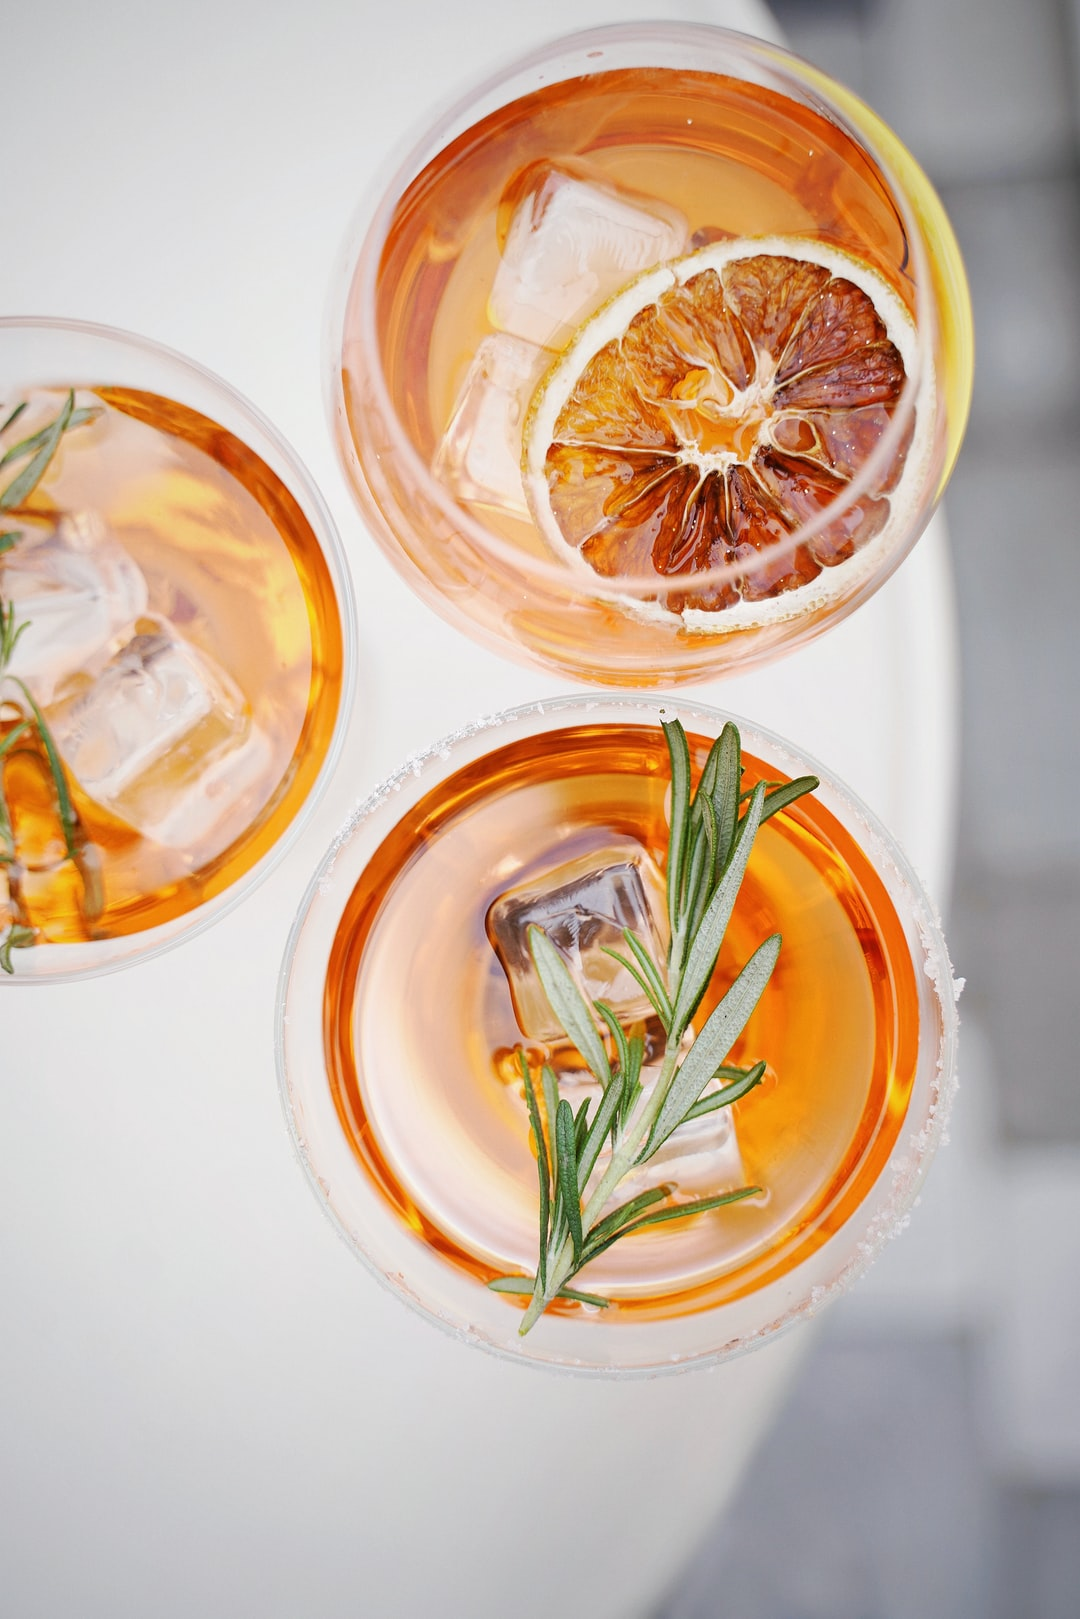 Orange drinks with ice cubes and a sprig of rosemary on top